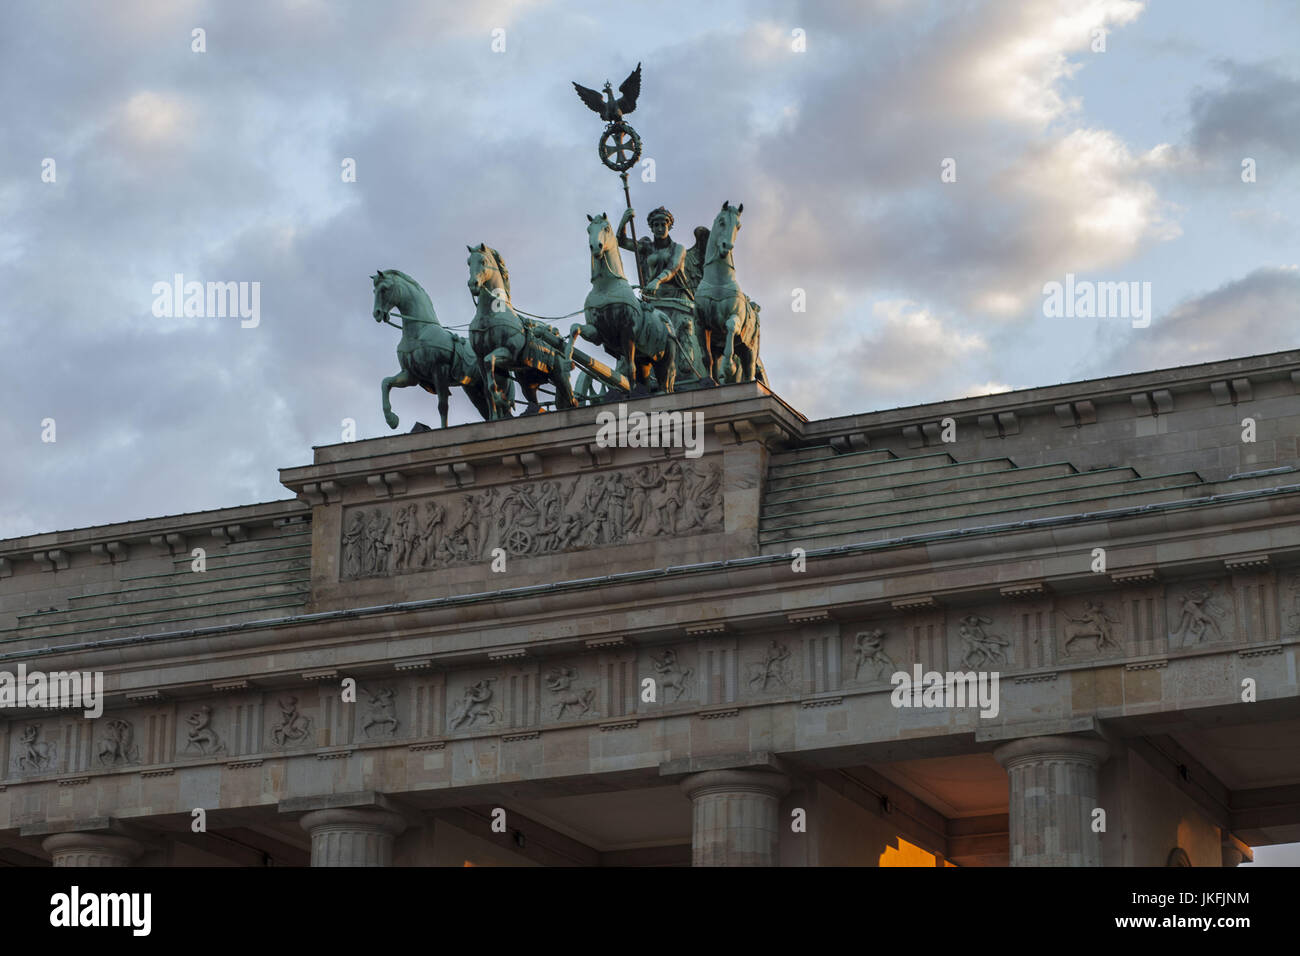 Berlin, Germany. 24th July, 2017. A view of Brandenburg Gate, at Berlin's Parizer Platz, July 23, 2017. Credit: Stock Photo